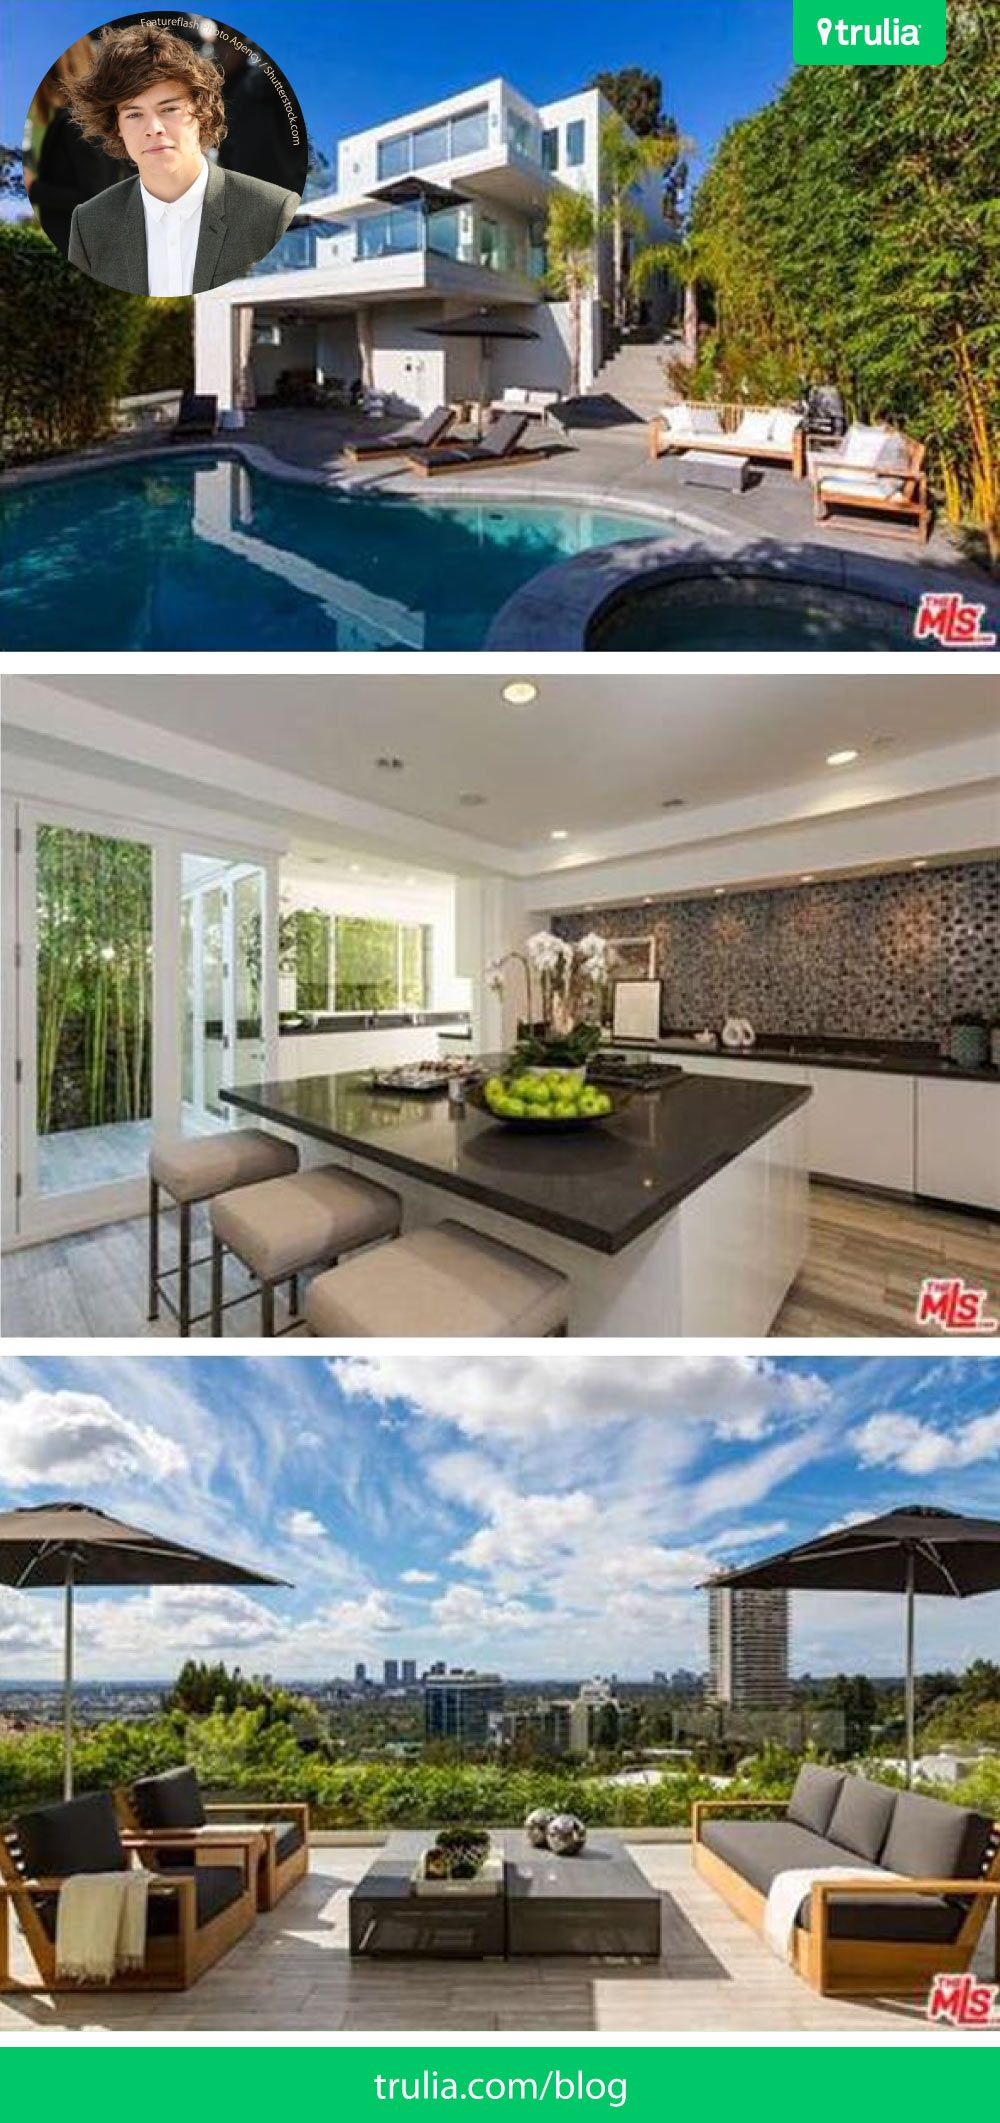 Harry Styles 2016 Brings A New House Off The Sunset Strip Modern